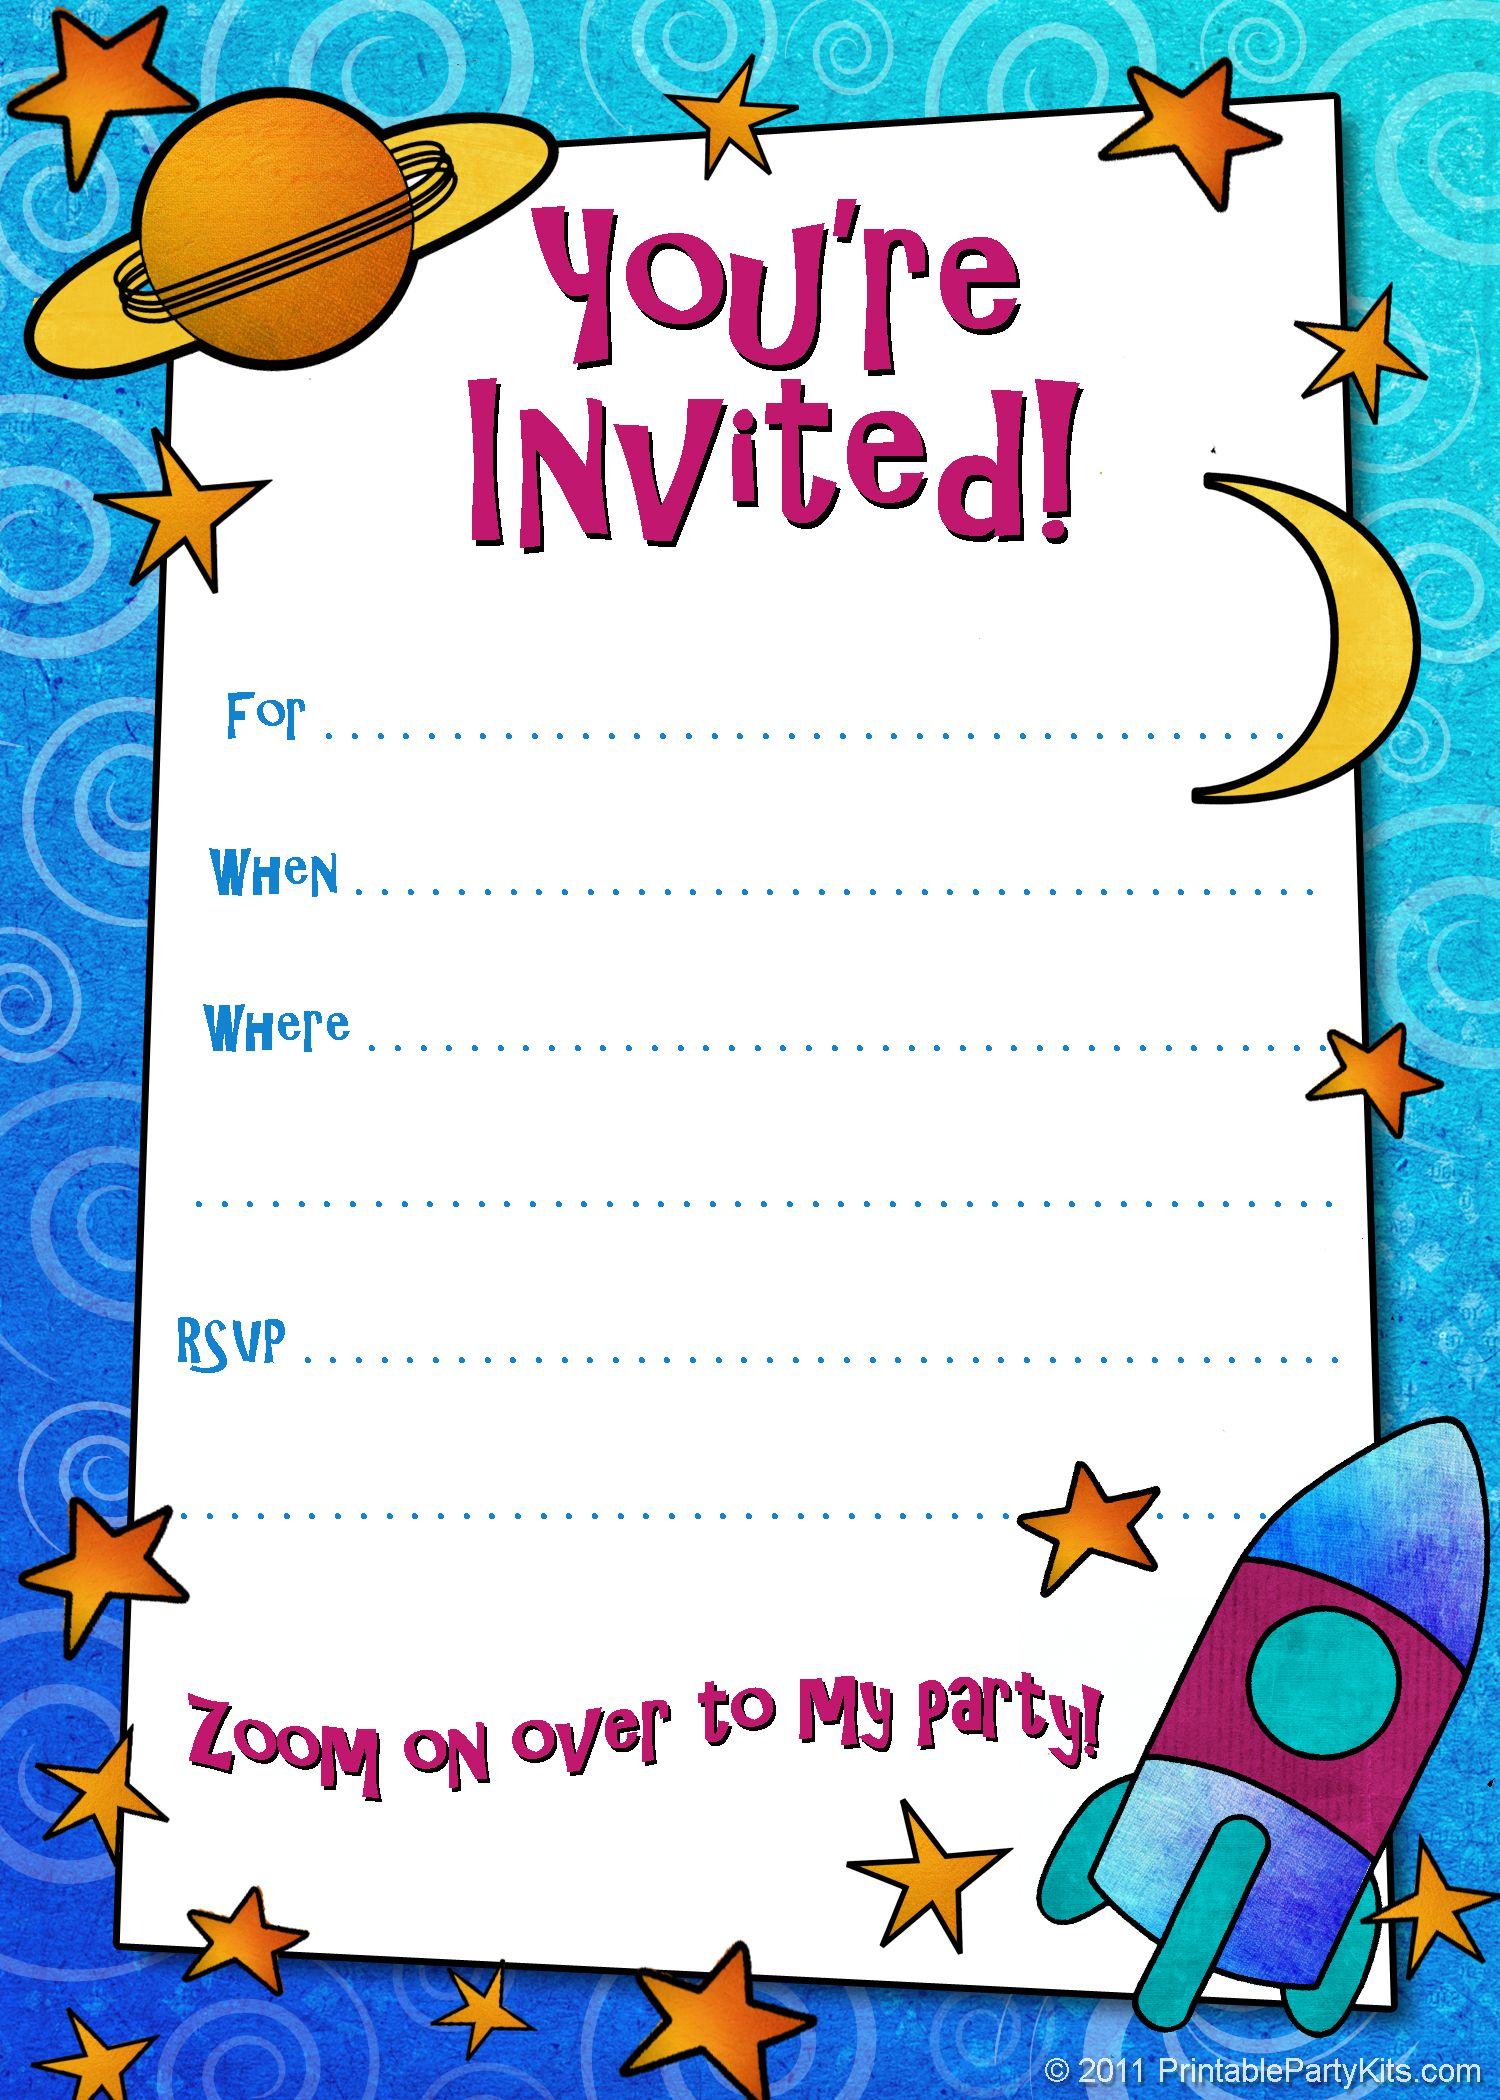 Free Printable Boys Birthday Party Invitations – Where Can I Print Birthday Invitations